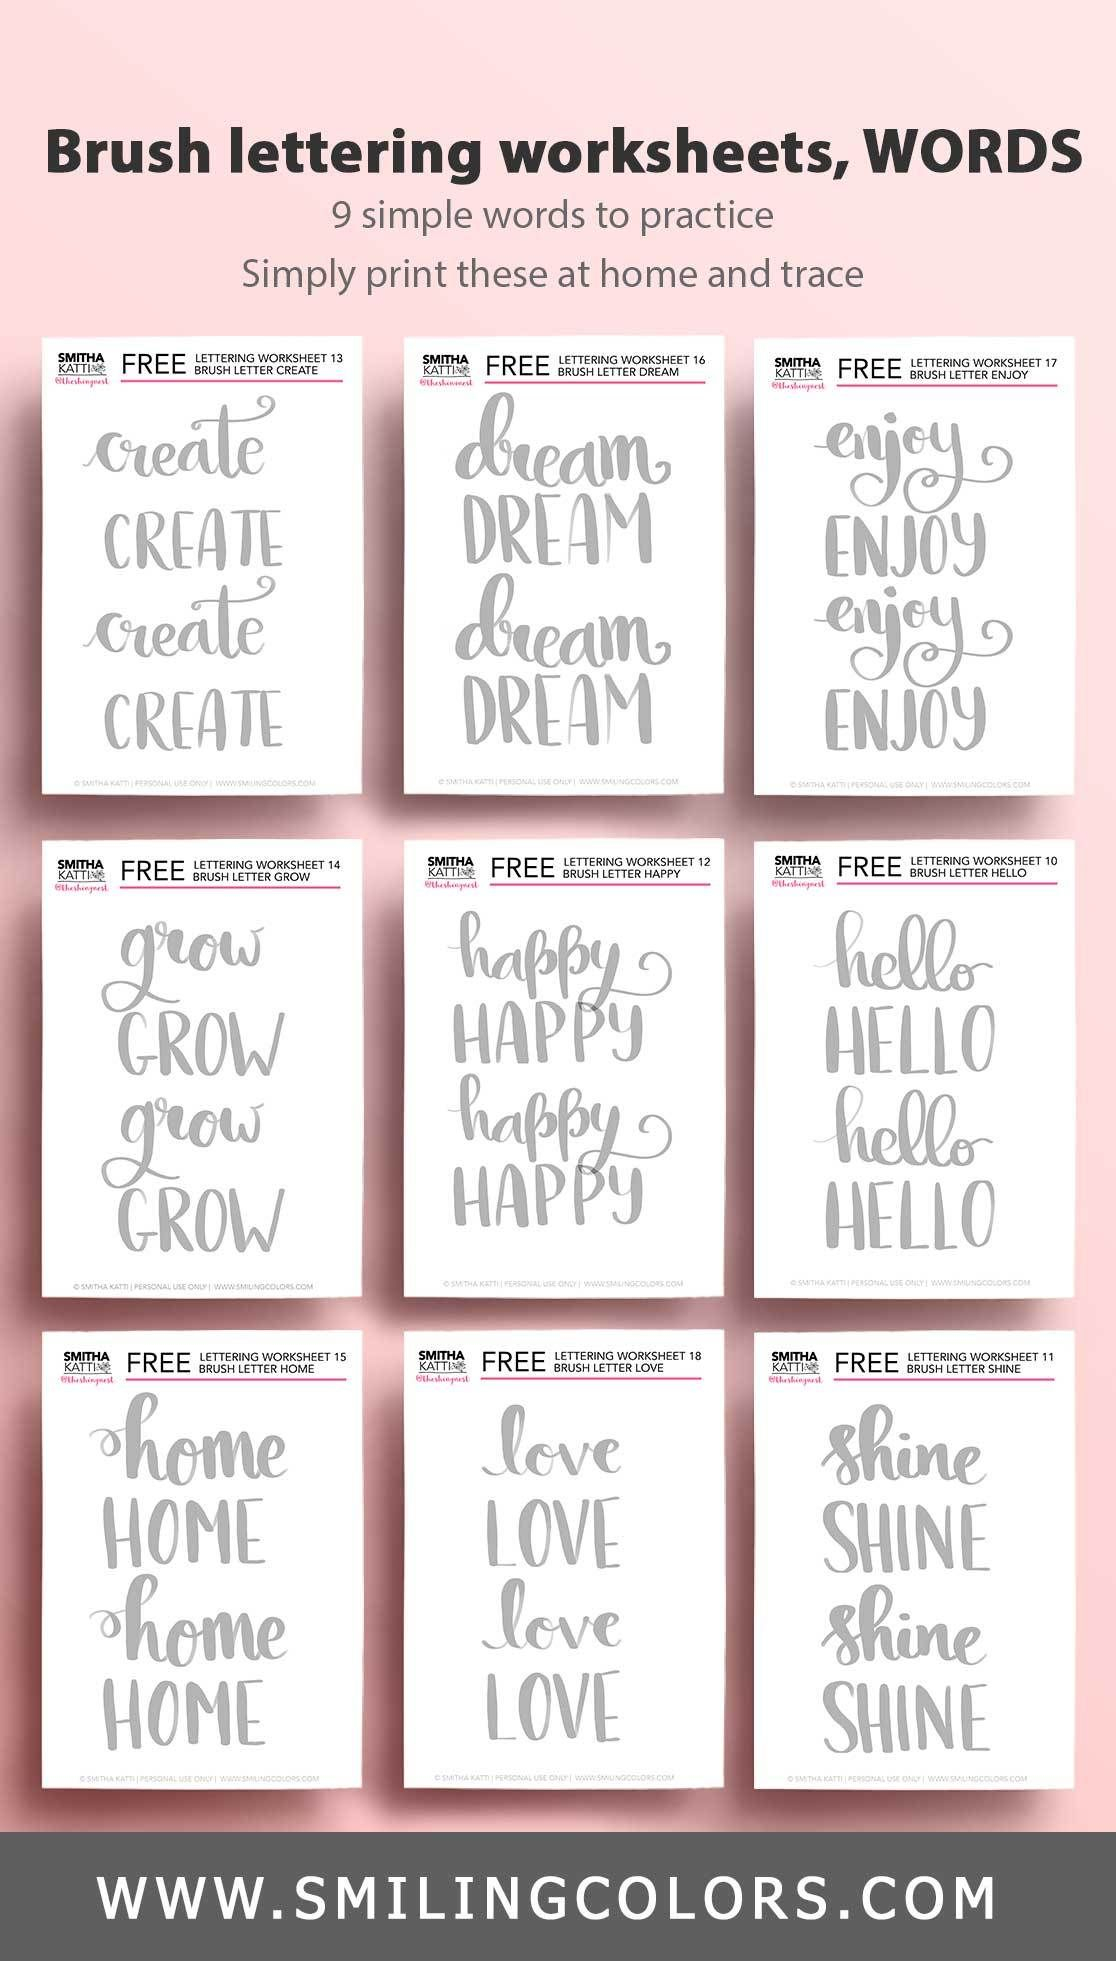 Brush Lettering Worksheets- 9 Words To Practice! | To The in Letter 9 Worksheets